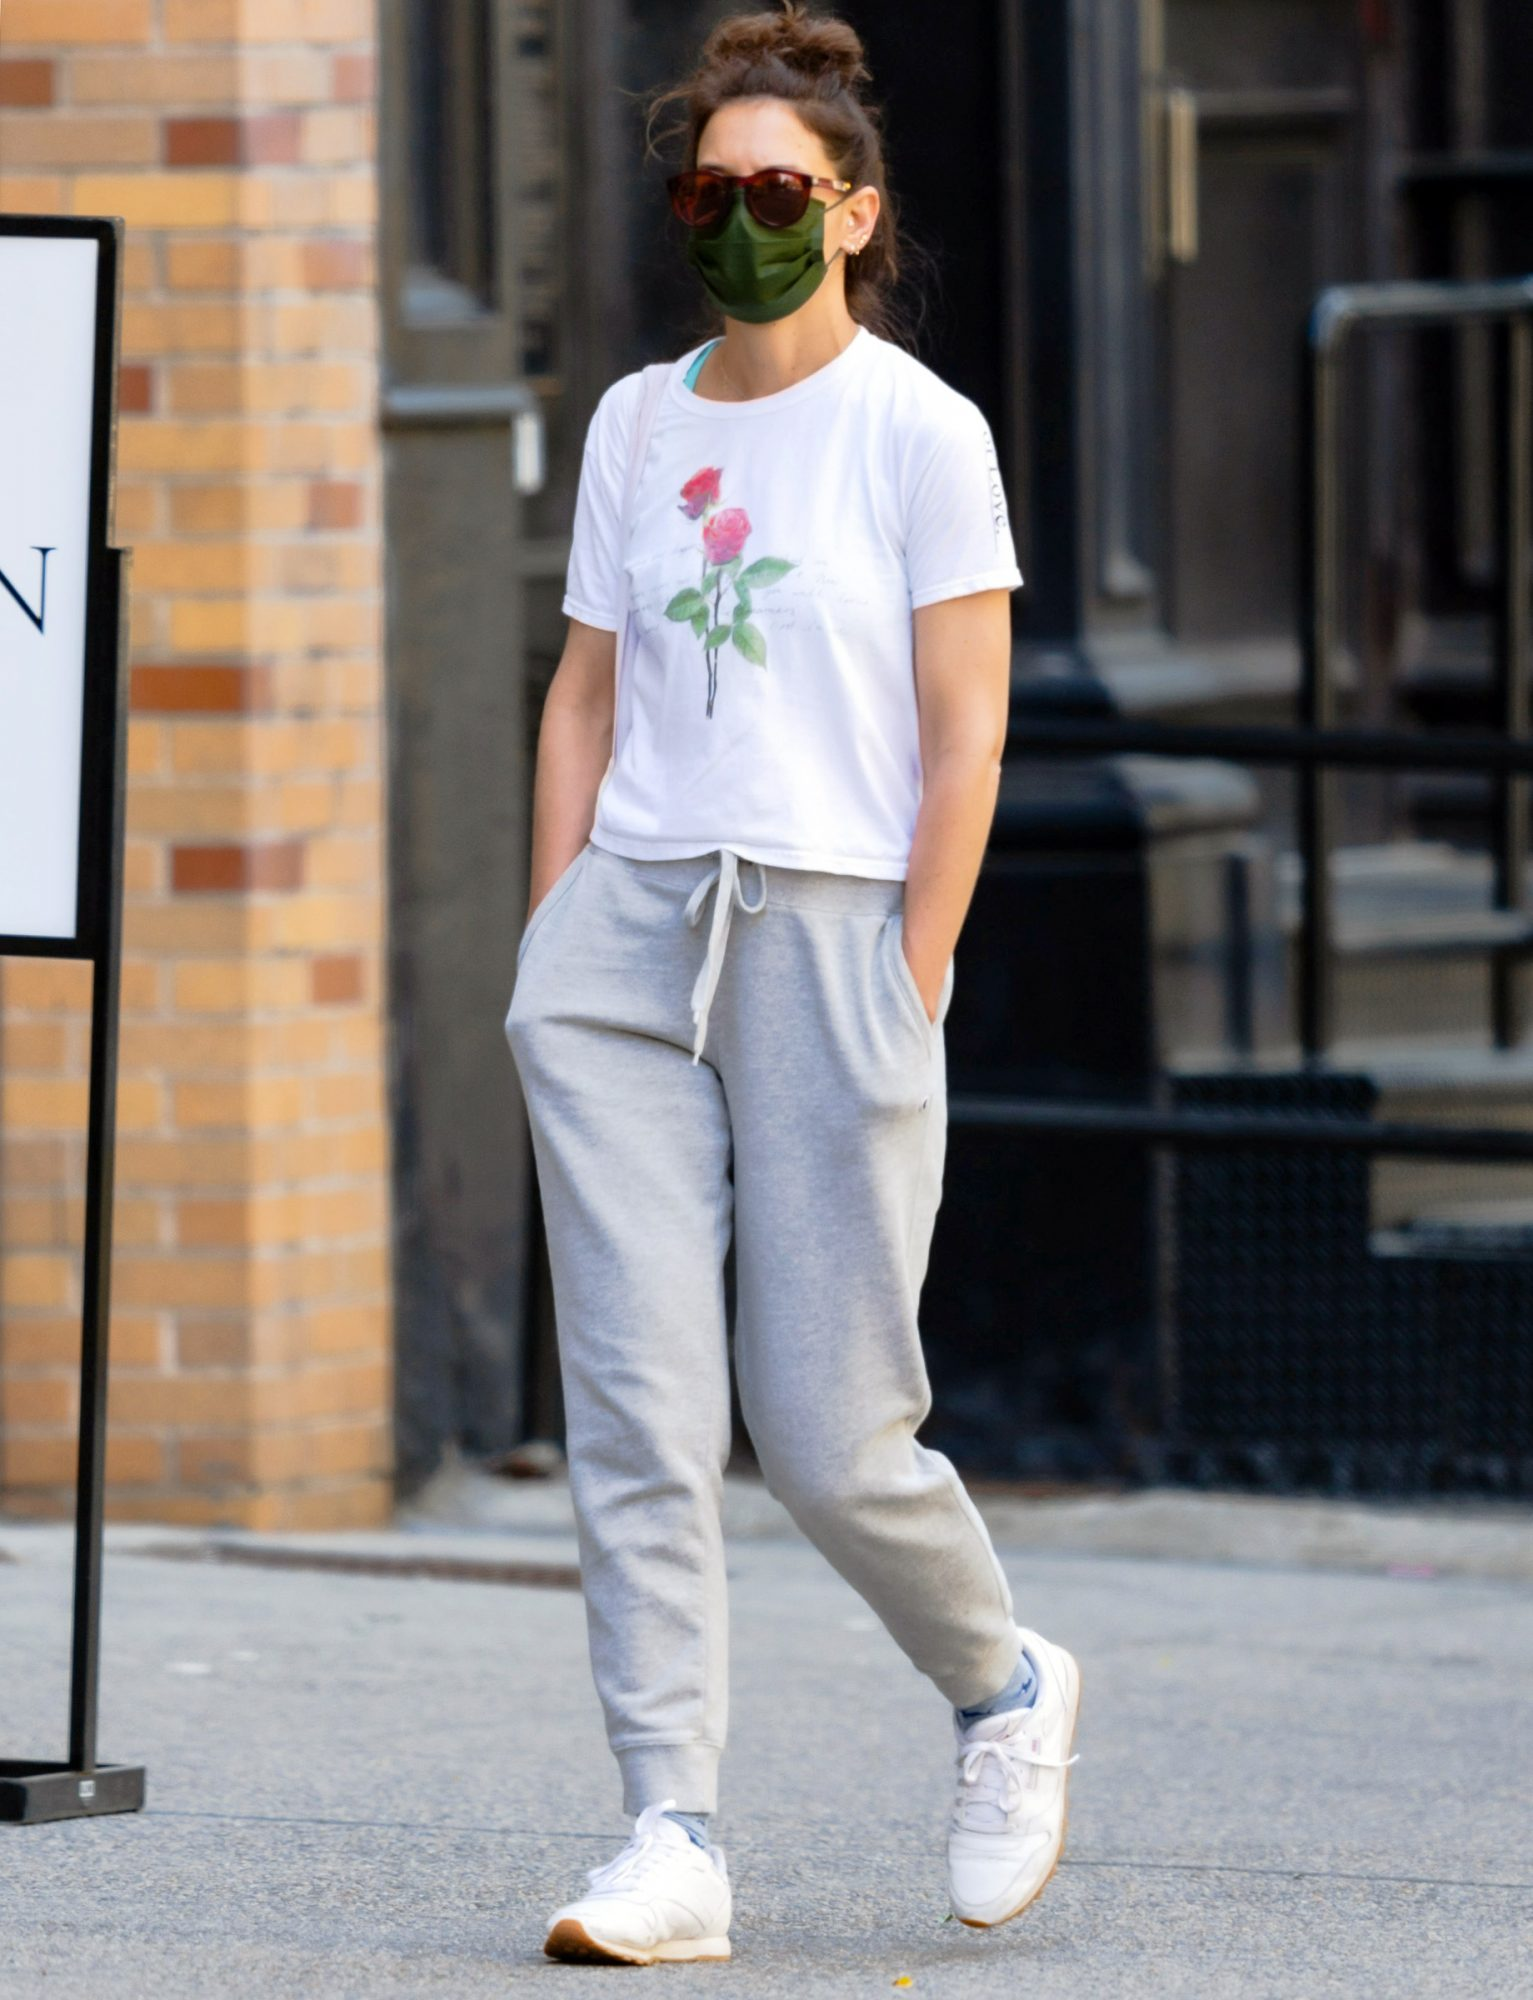 Katie Holmes is Pictured Stepping Out in New York City.